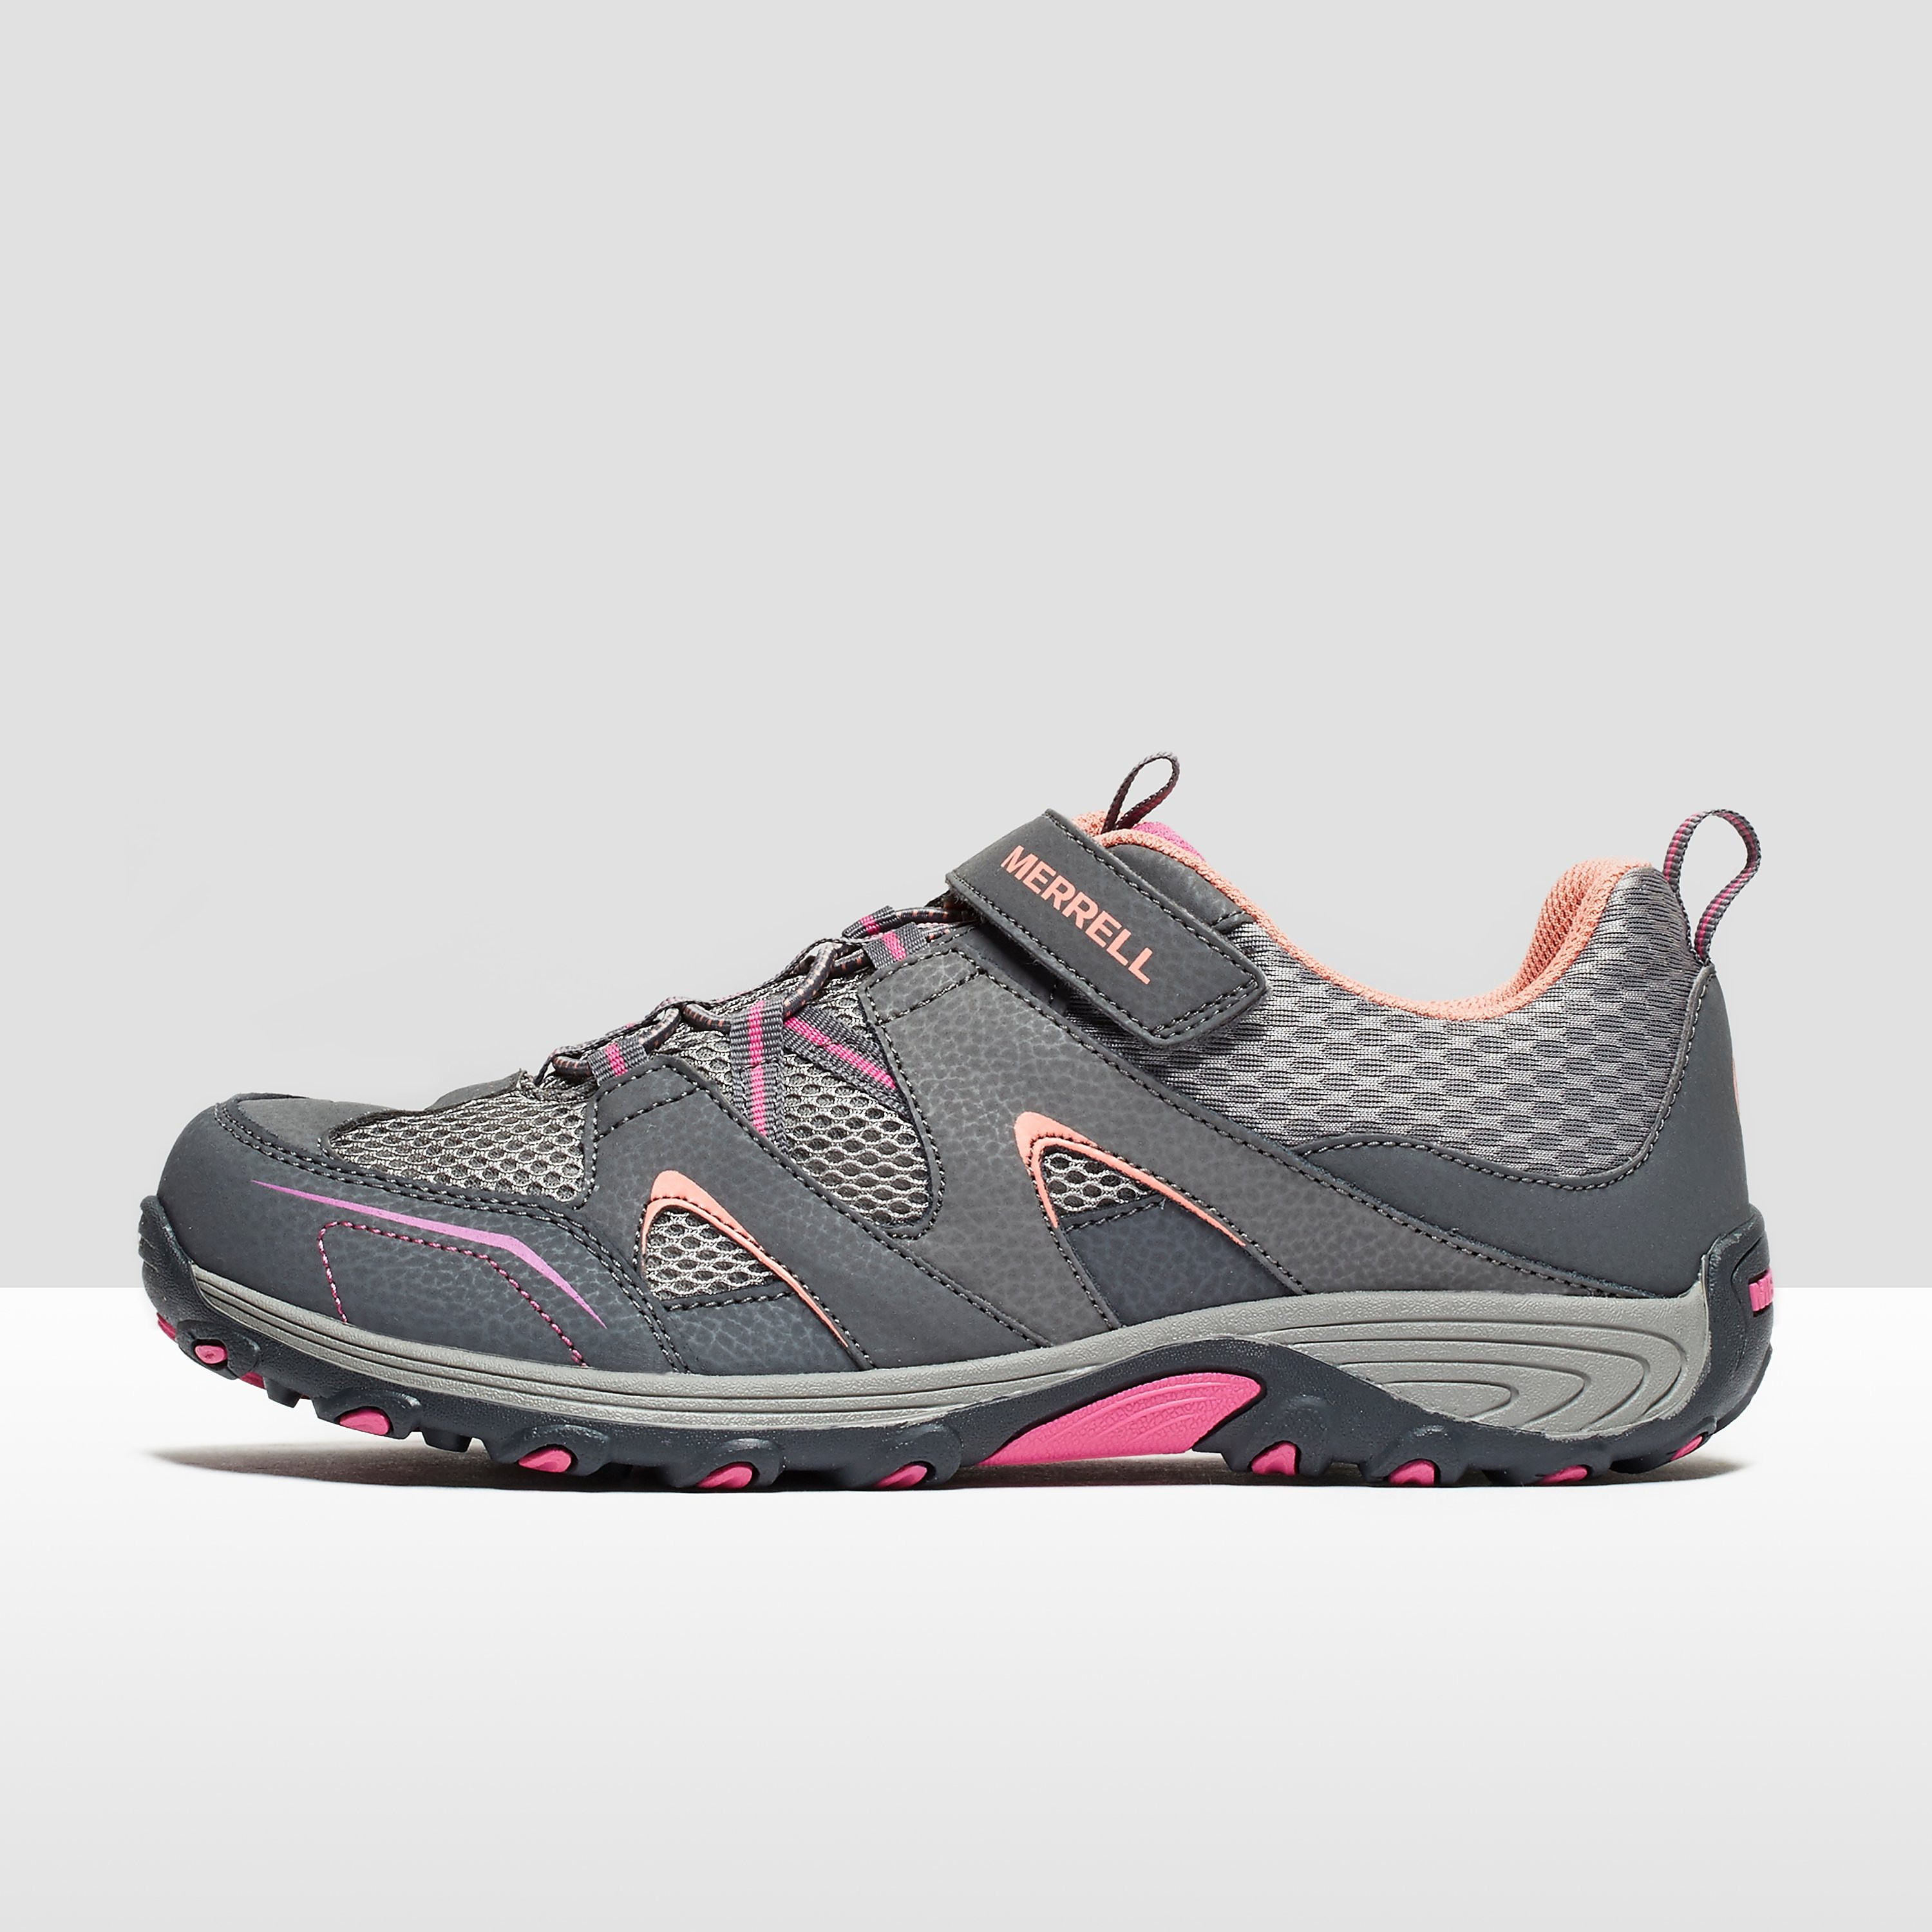 Merrell Girls' Trail Chaser Low Rise Hiking Shoes